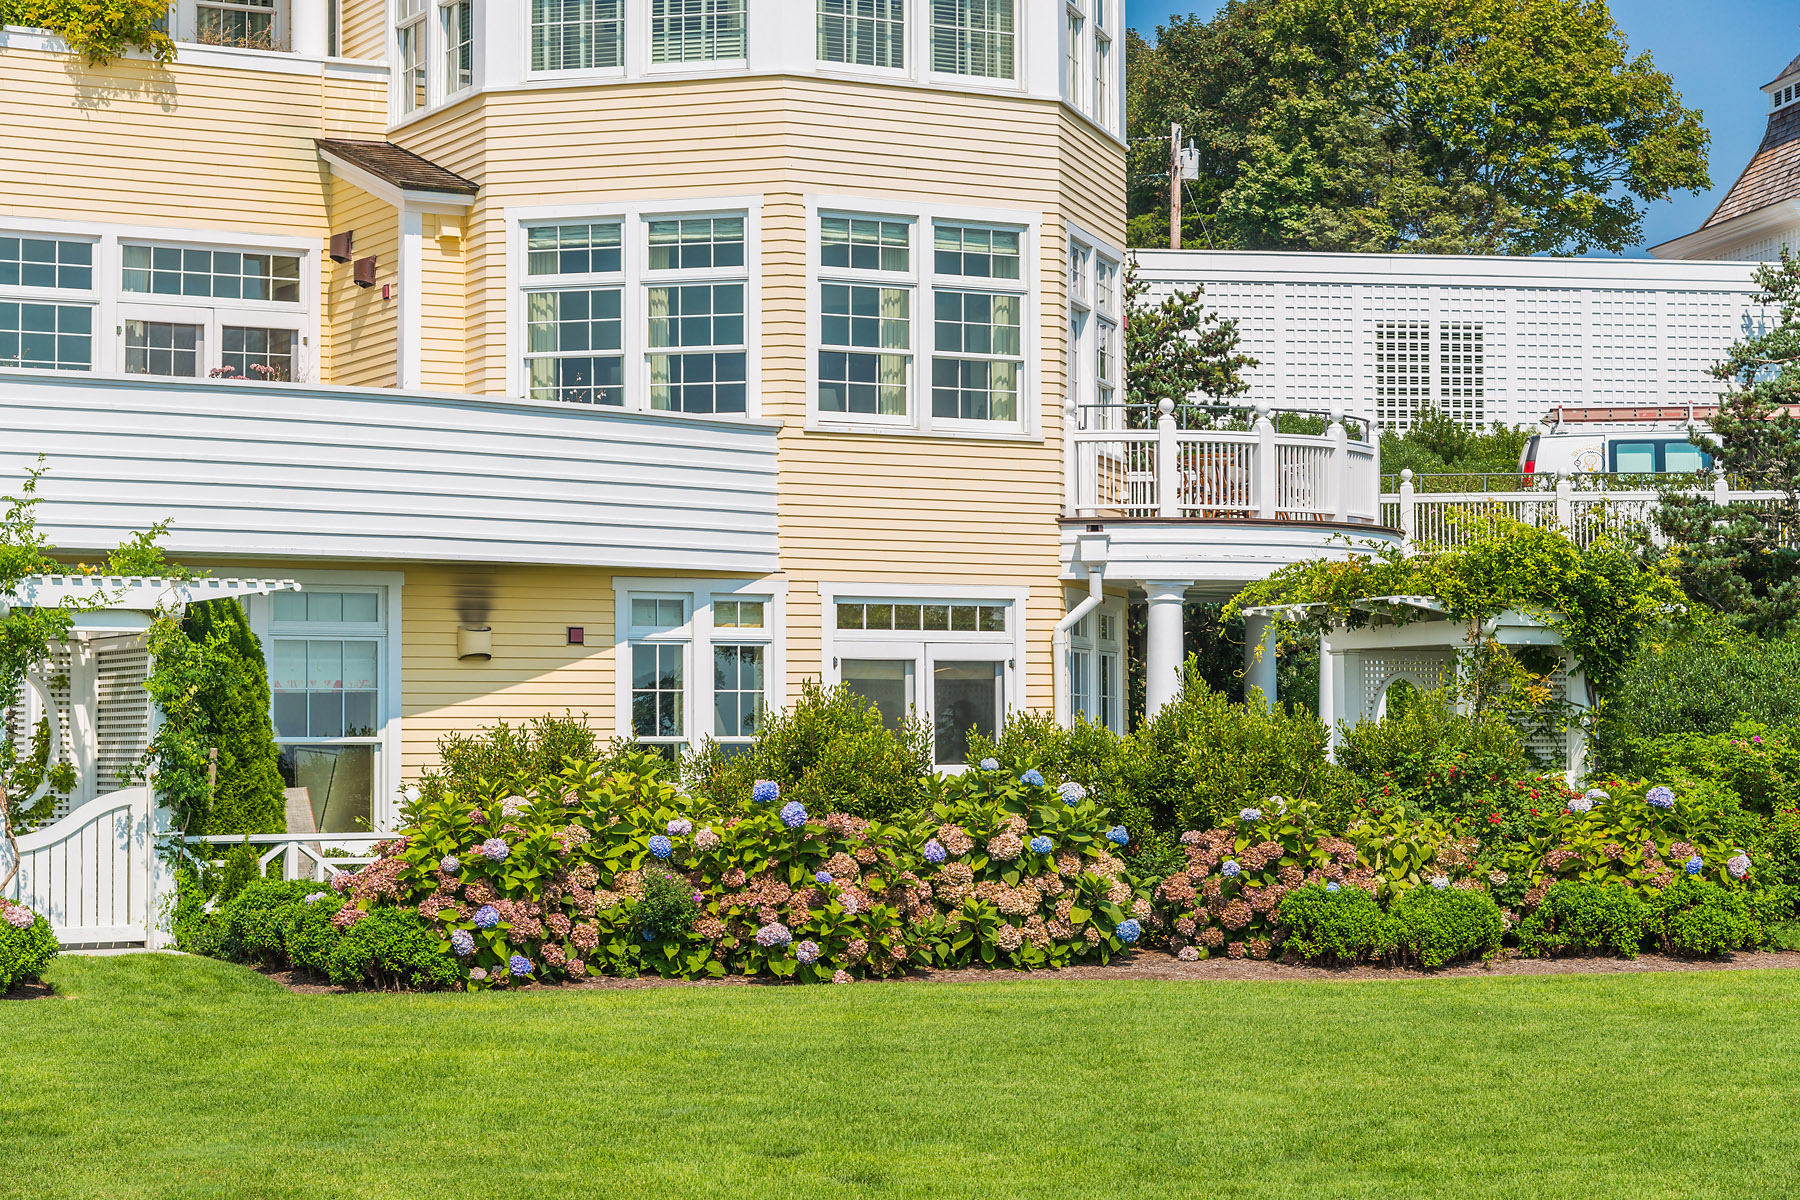 Condominium for Sale at Ocean House Condo 2 Bluff Avenue, B3-4 Westerly, Rhode Island 02891 United States